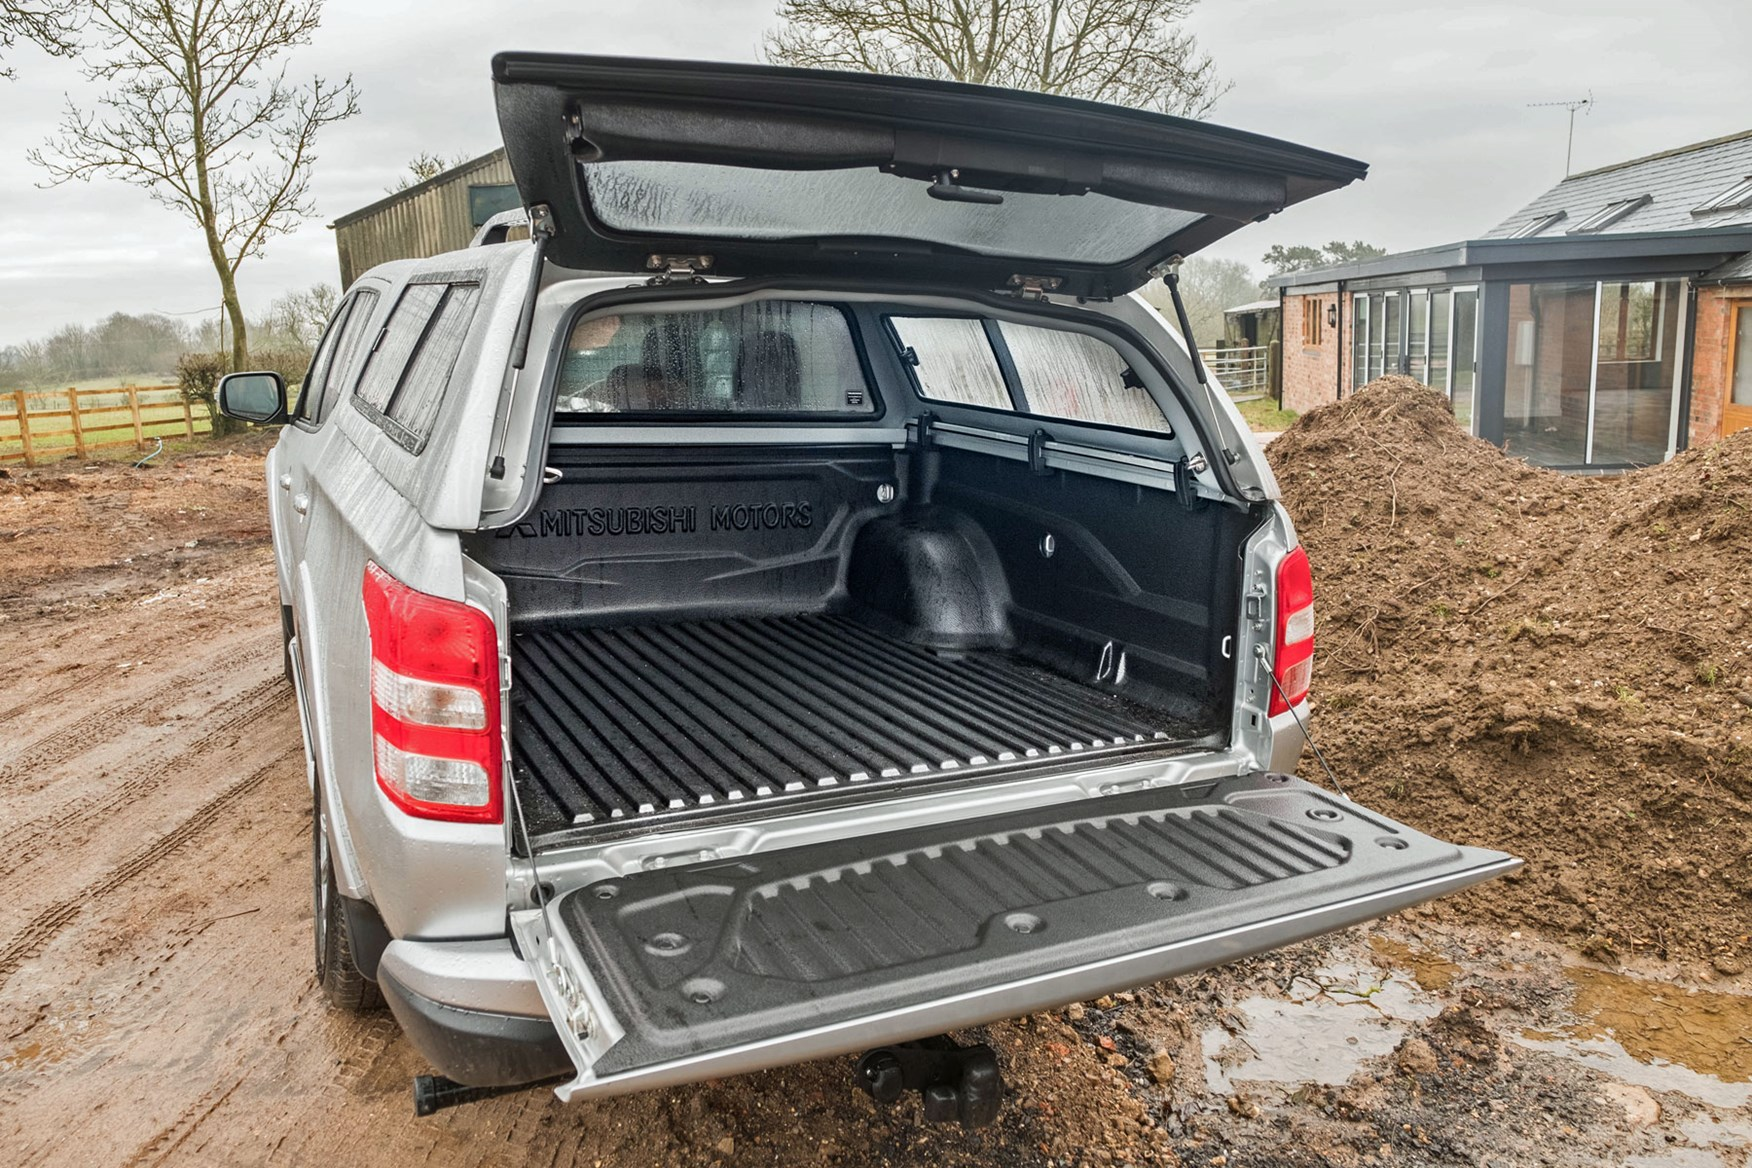 Mitsubishi L200 review, silver, rear view, load area with hard top